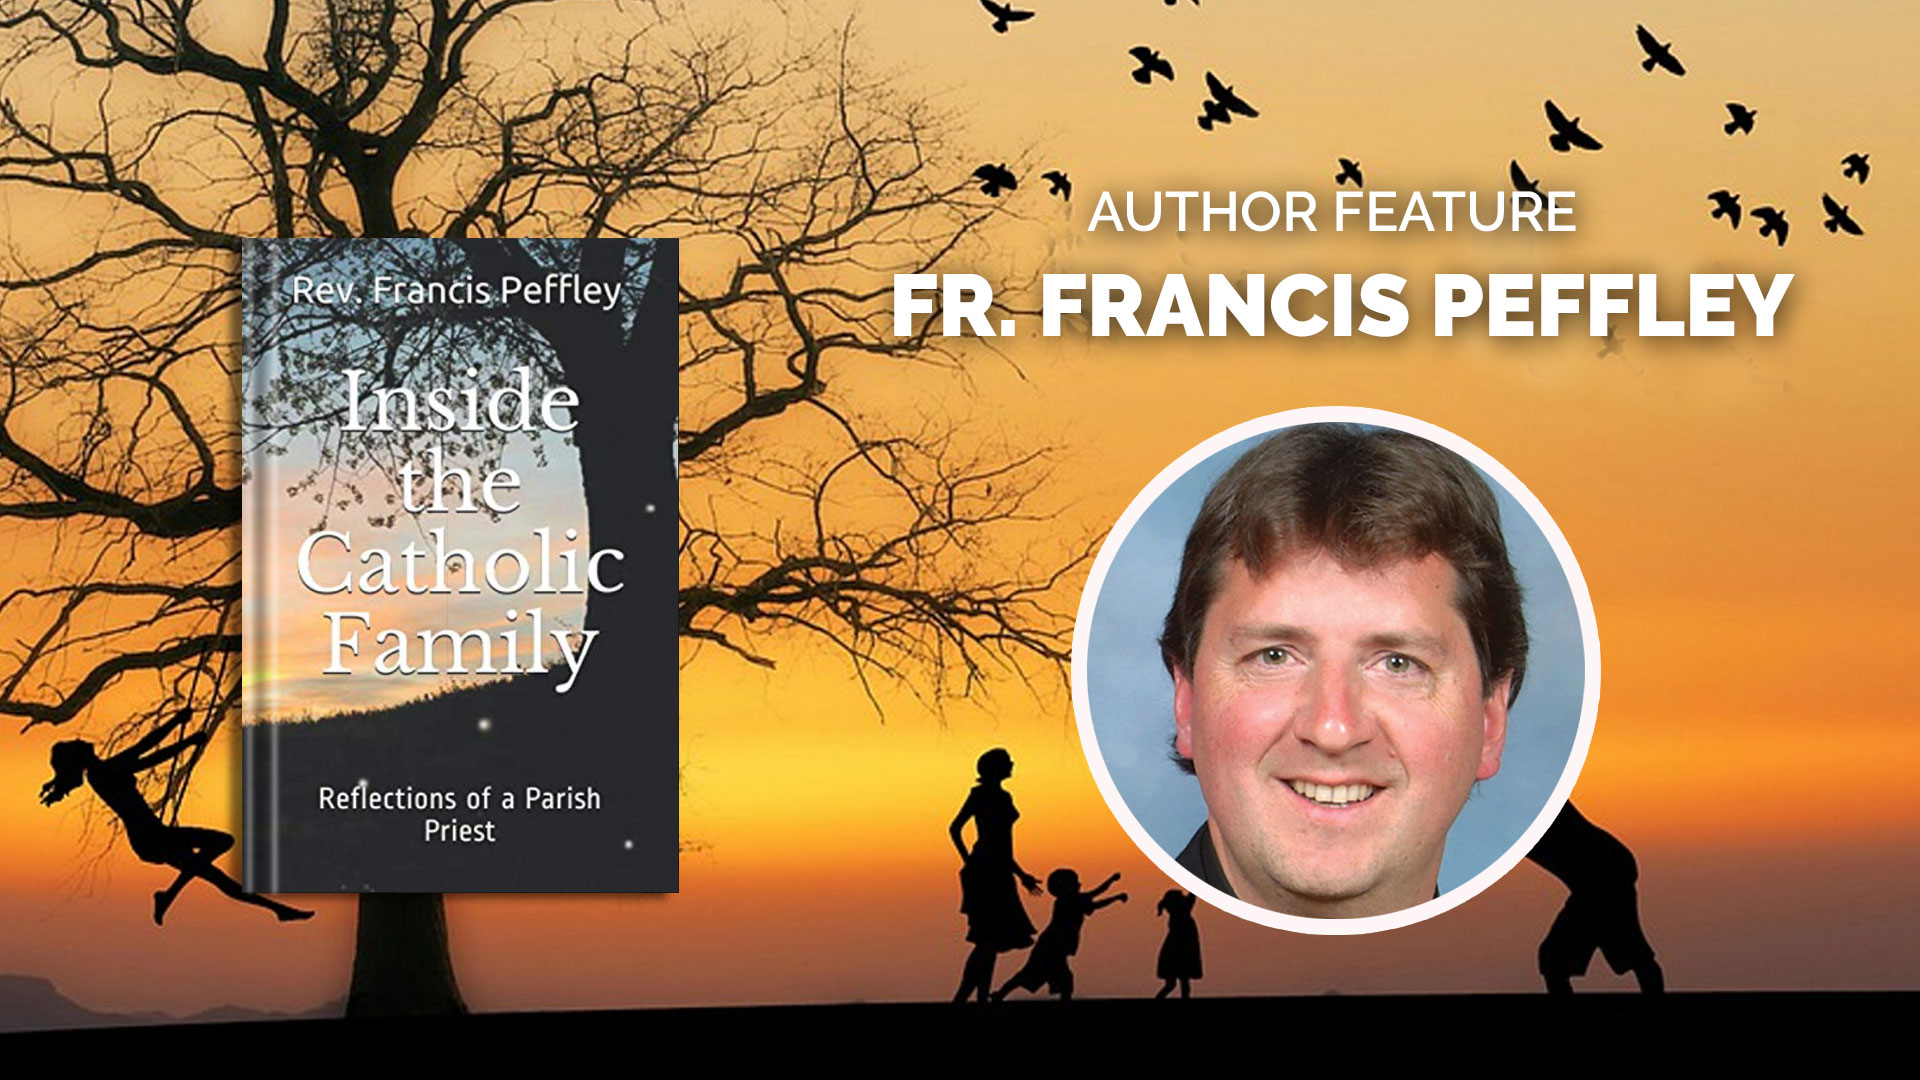 author-feature-fr-Francis-Peffley banner